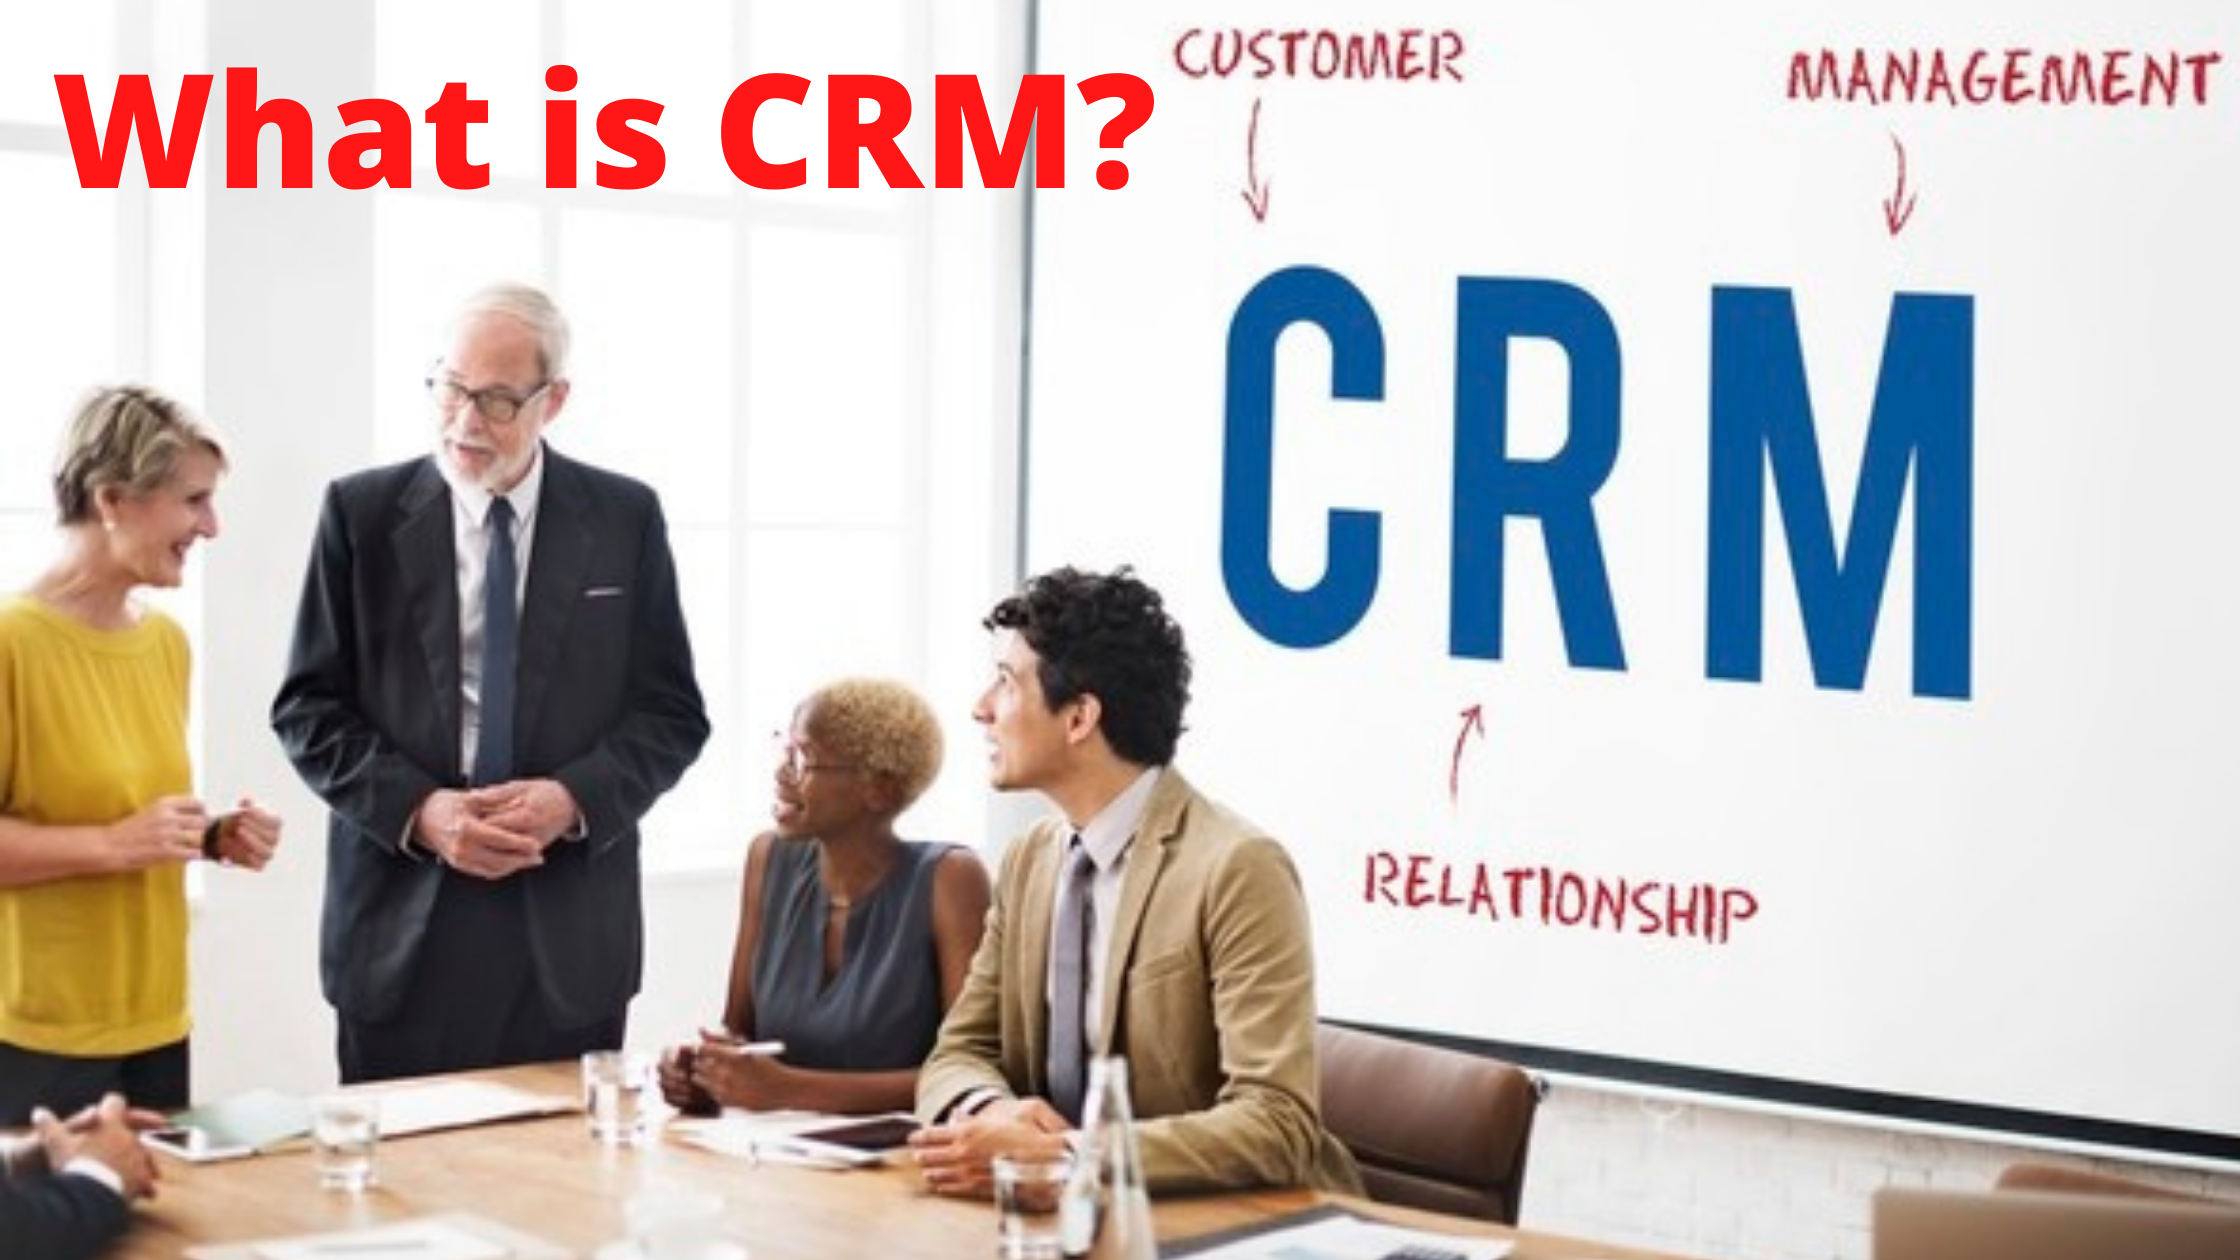 What is CRM - Customer Relationship Management